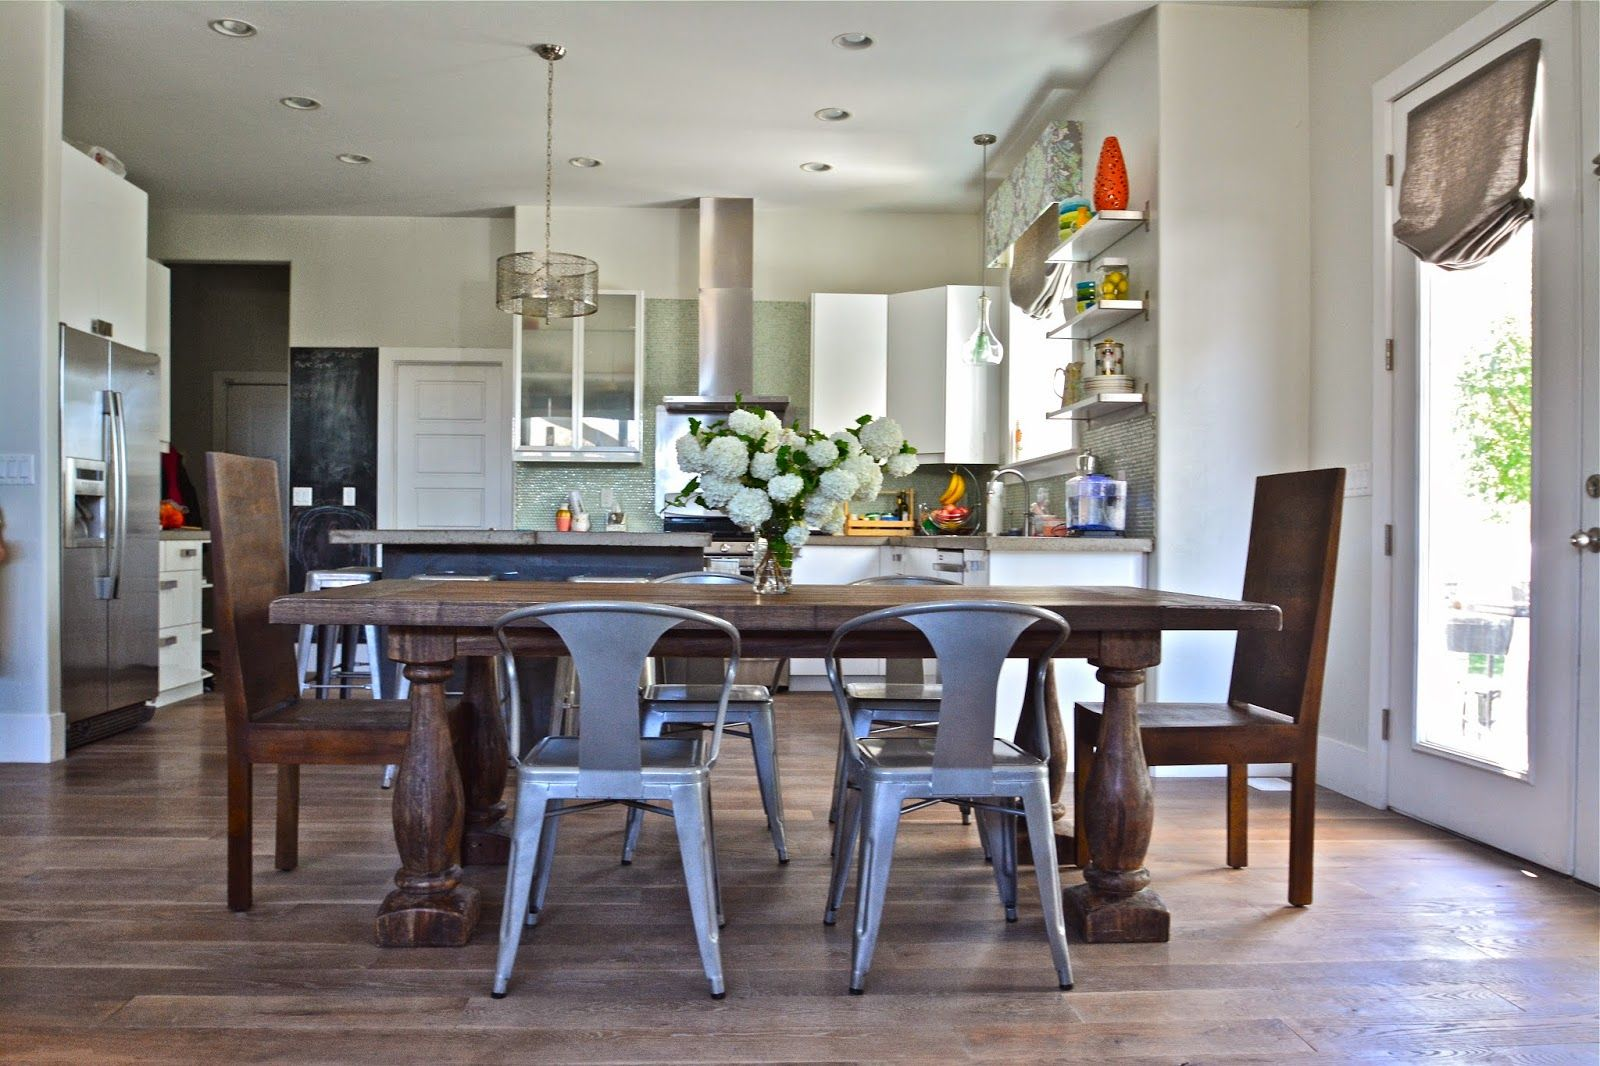 1000+ images about furniture on pinterest   chairs, dining rooms